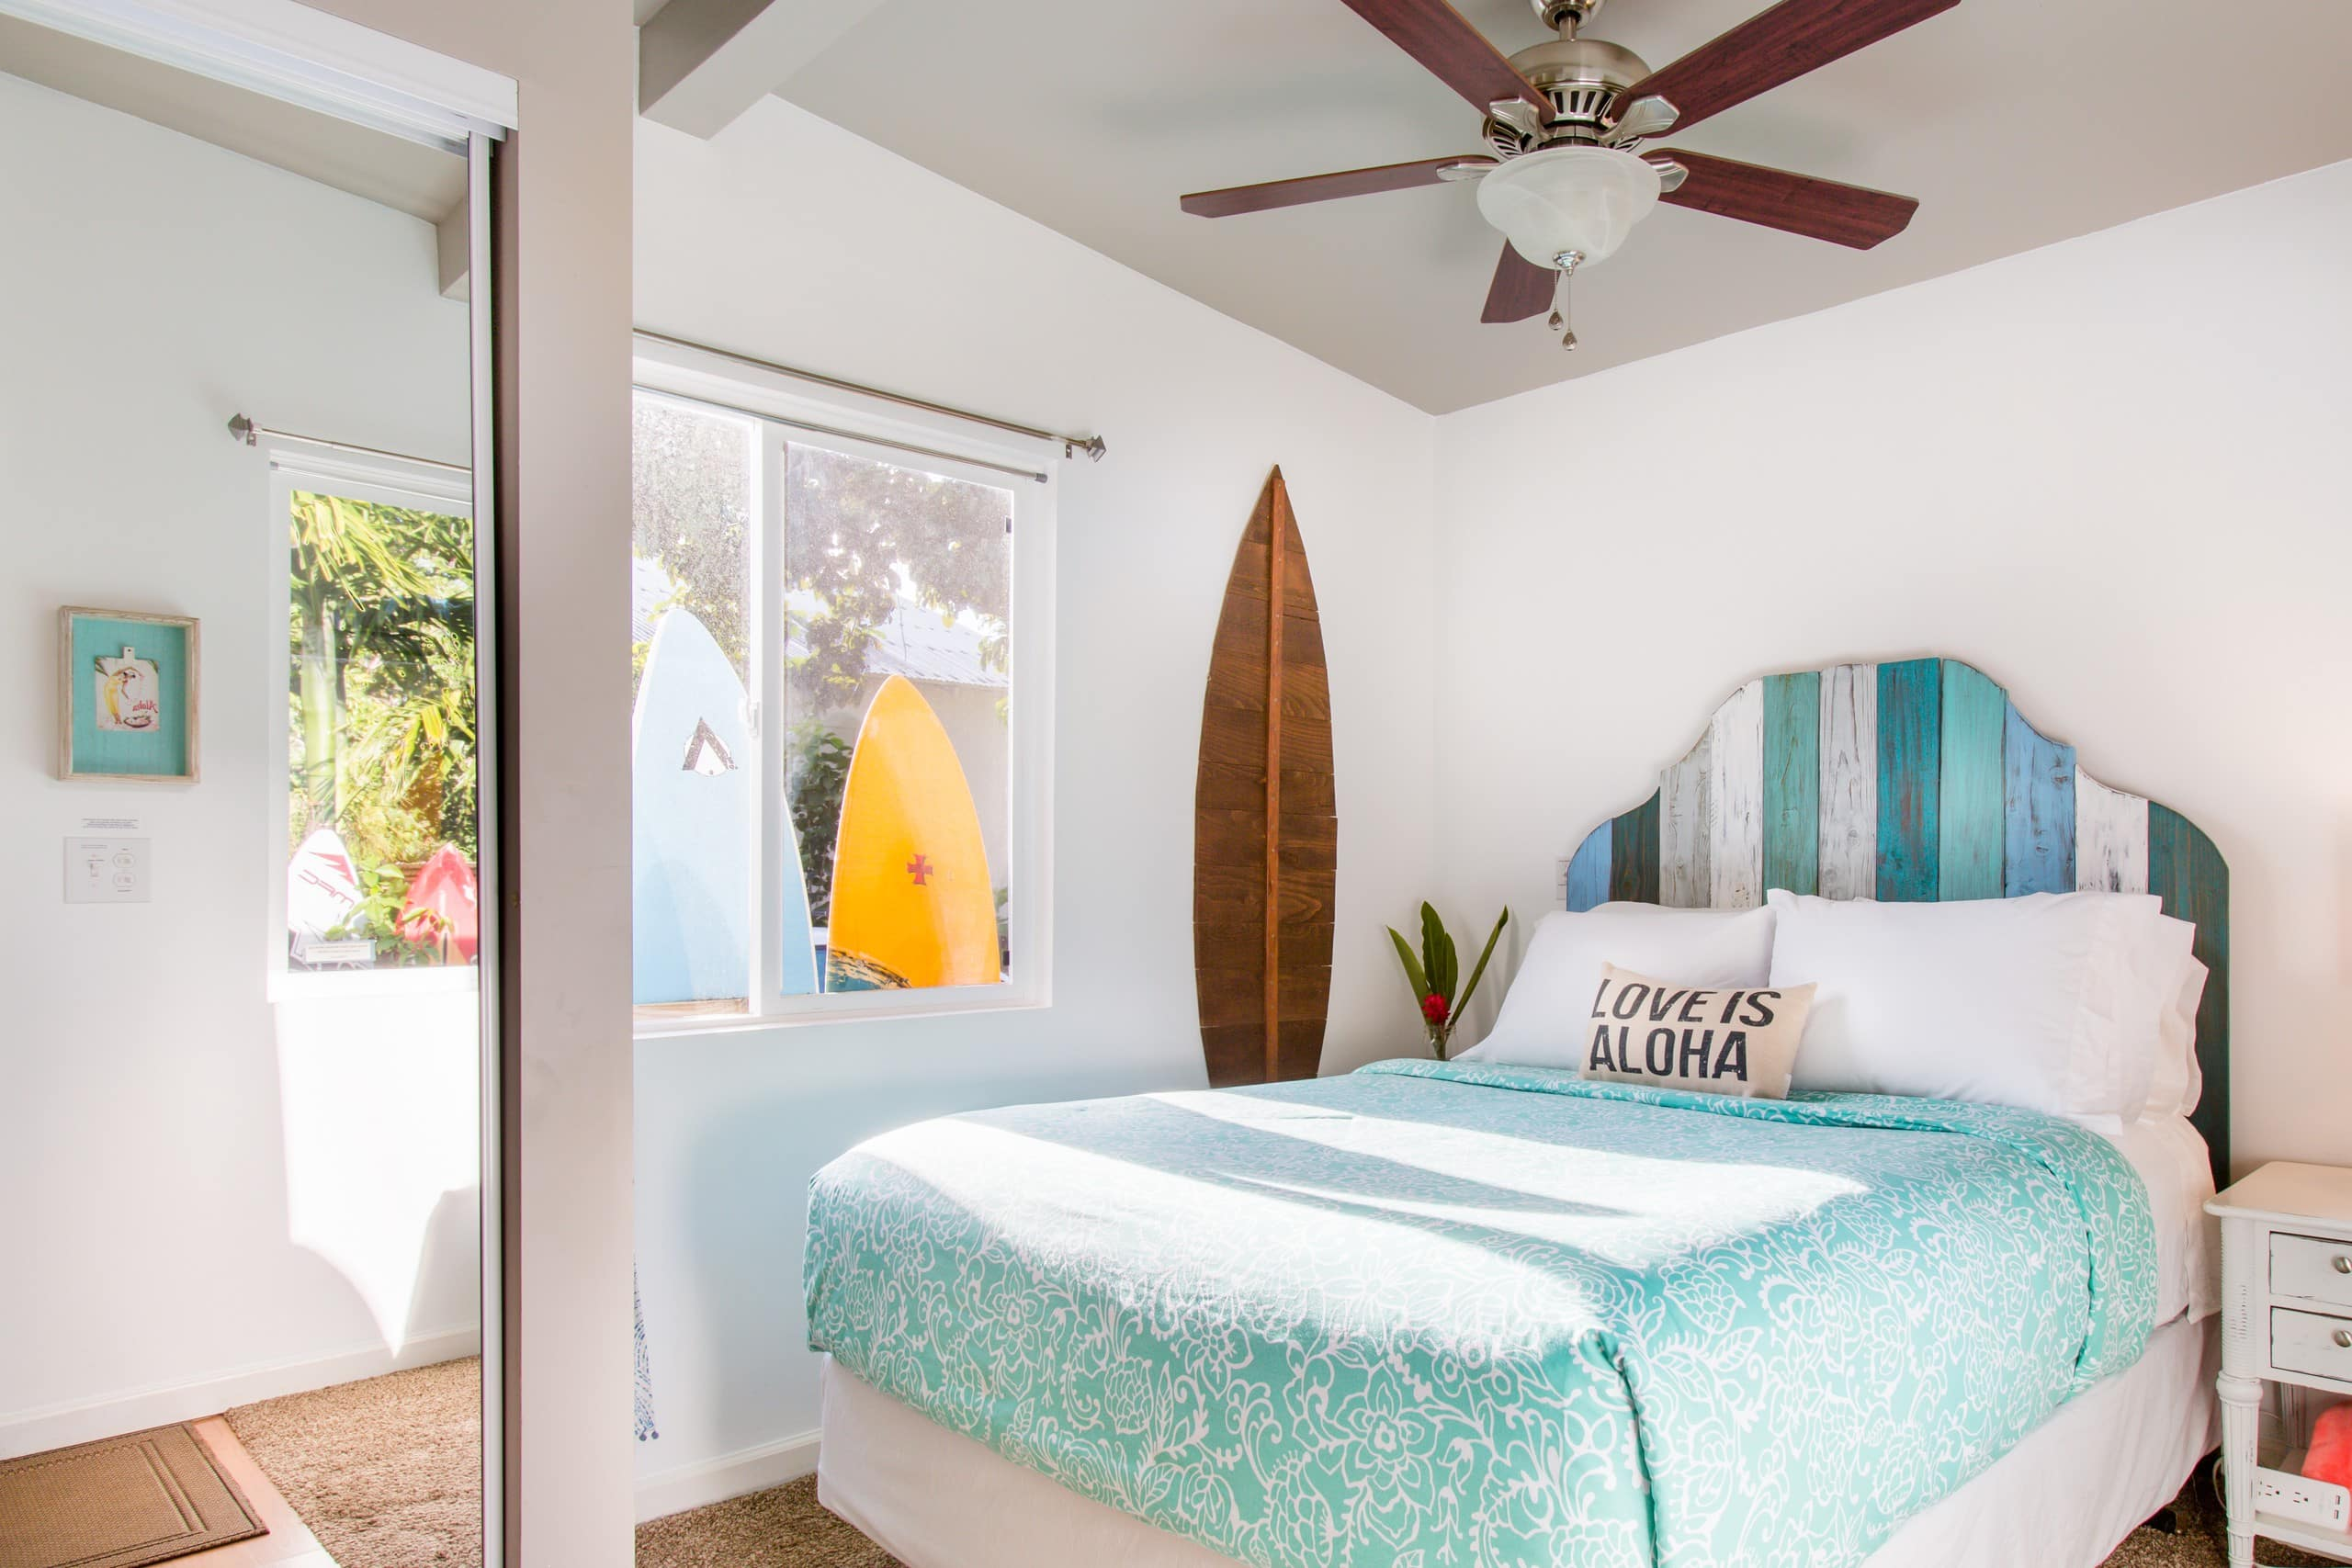 Top 10 Best Bed and Breakfasts in Maui featured by Hawaii blog, Hawaii Travel with Kids: https://a0.muscache.com/4ea/air/v2/pictures/3c3cd563-04c8-4b0b-85a3-481f4e72d7ca.jpg?t=r:w2500-h1500-sfit,e:fjpg-c90